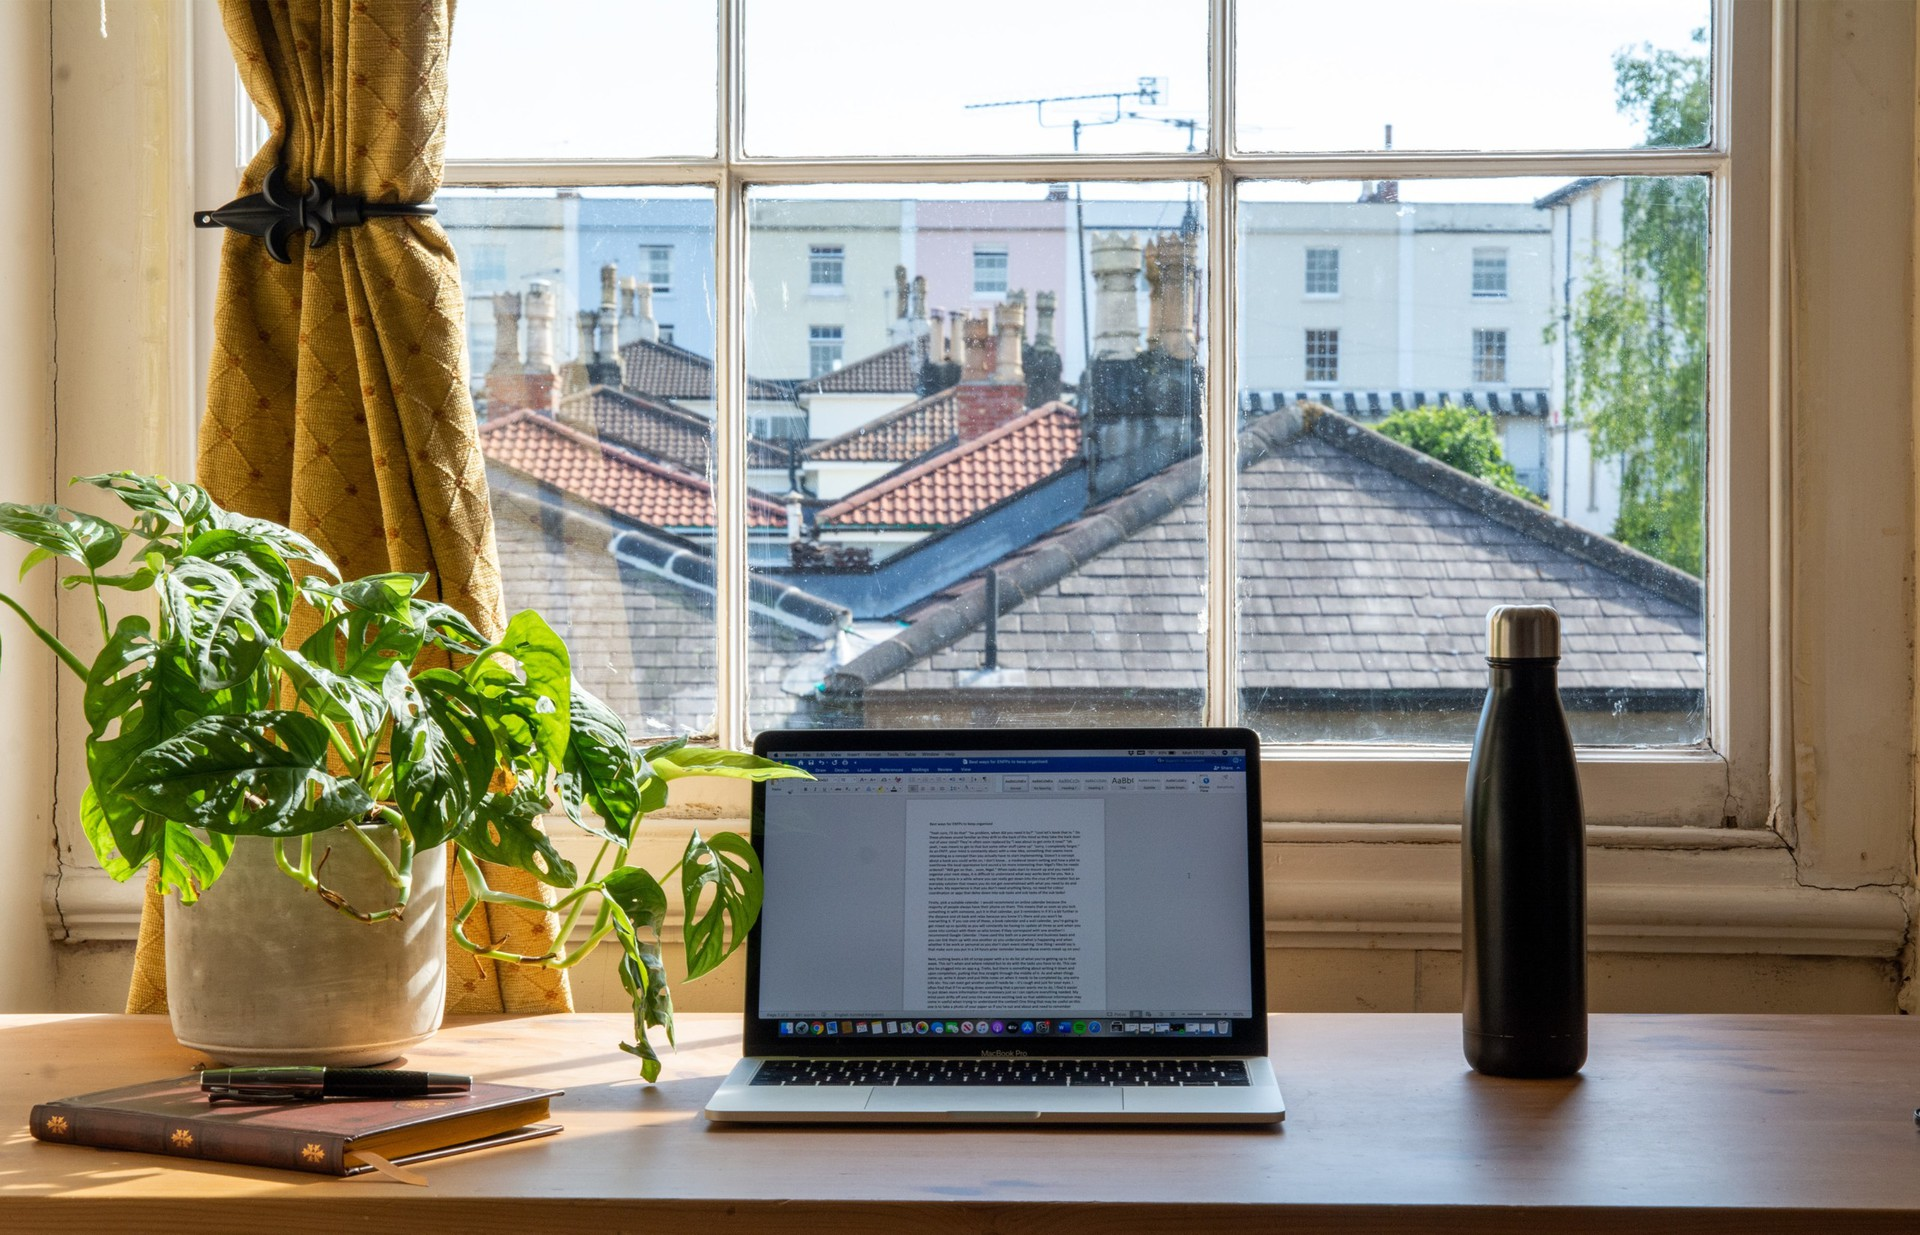 Work-at-home desk space with computer, potted plant and water bottle in front of a window in daytime